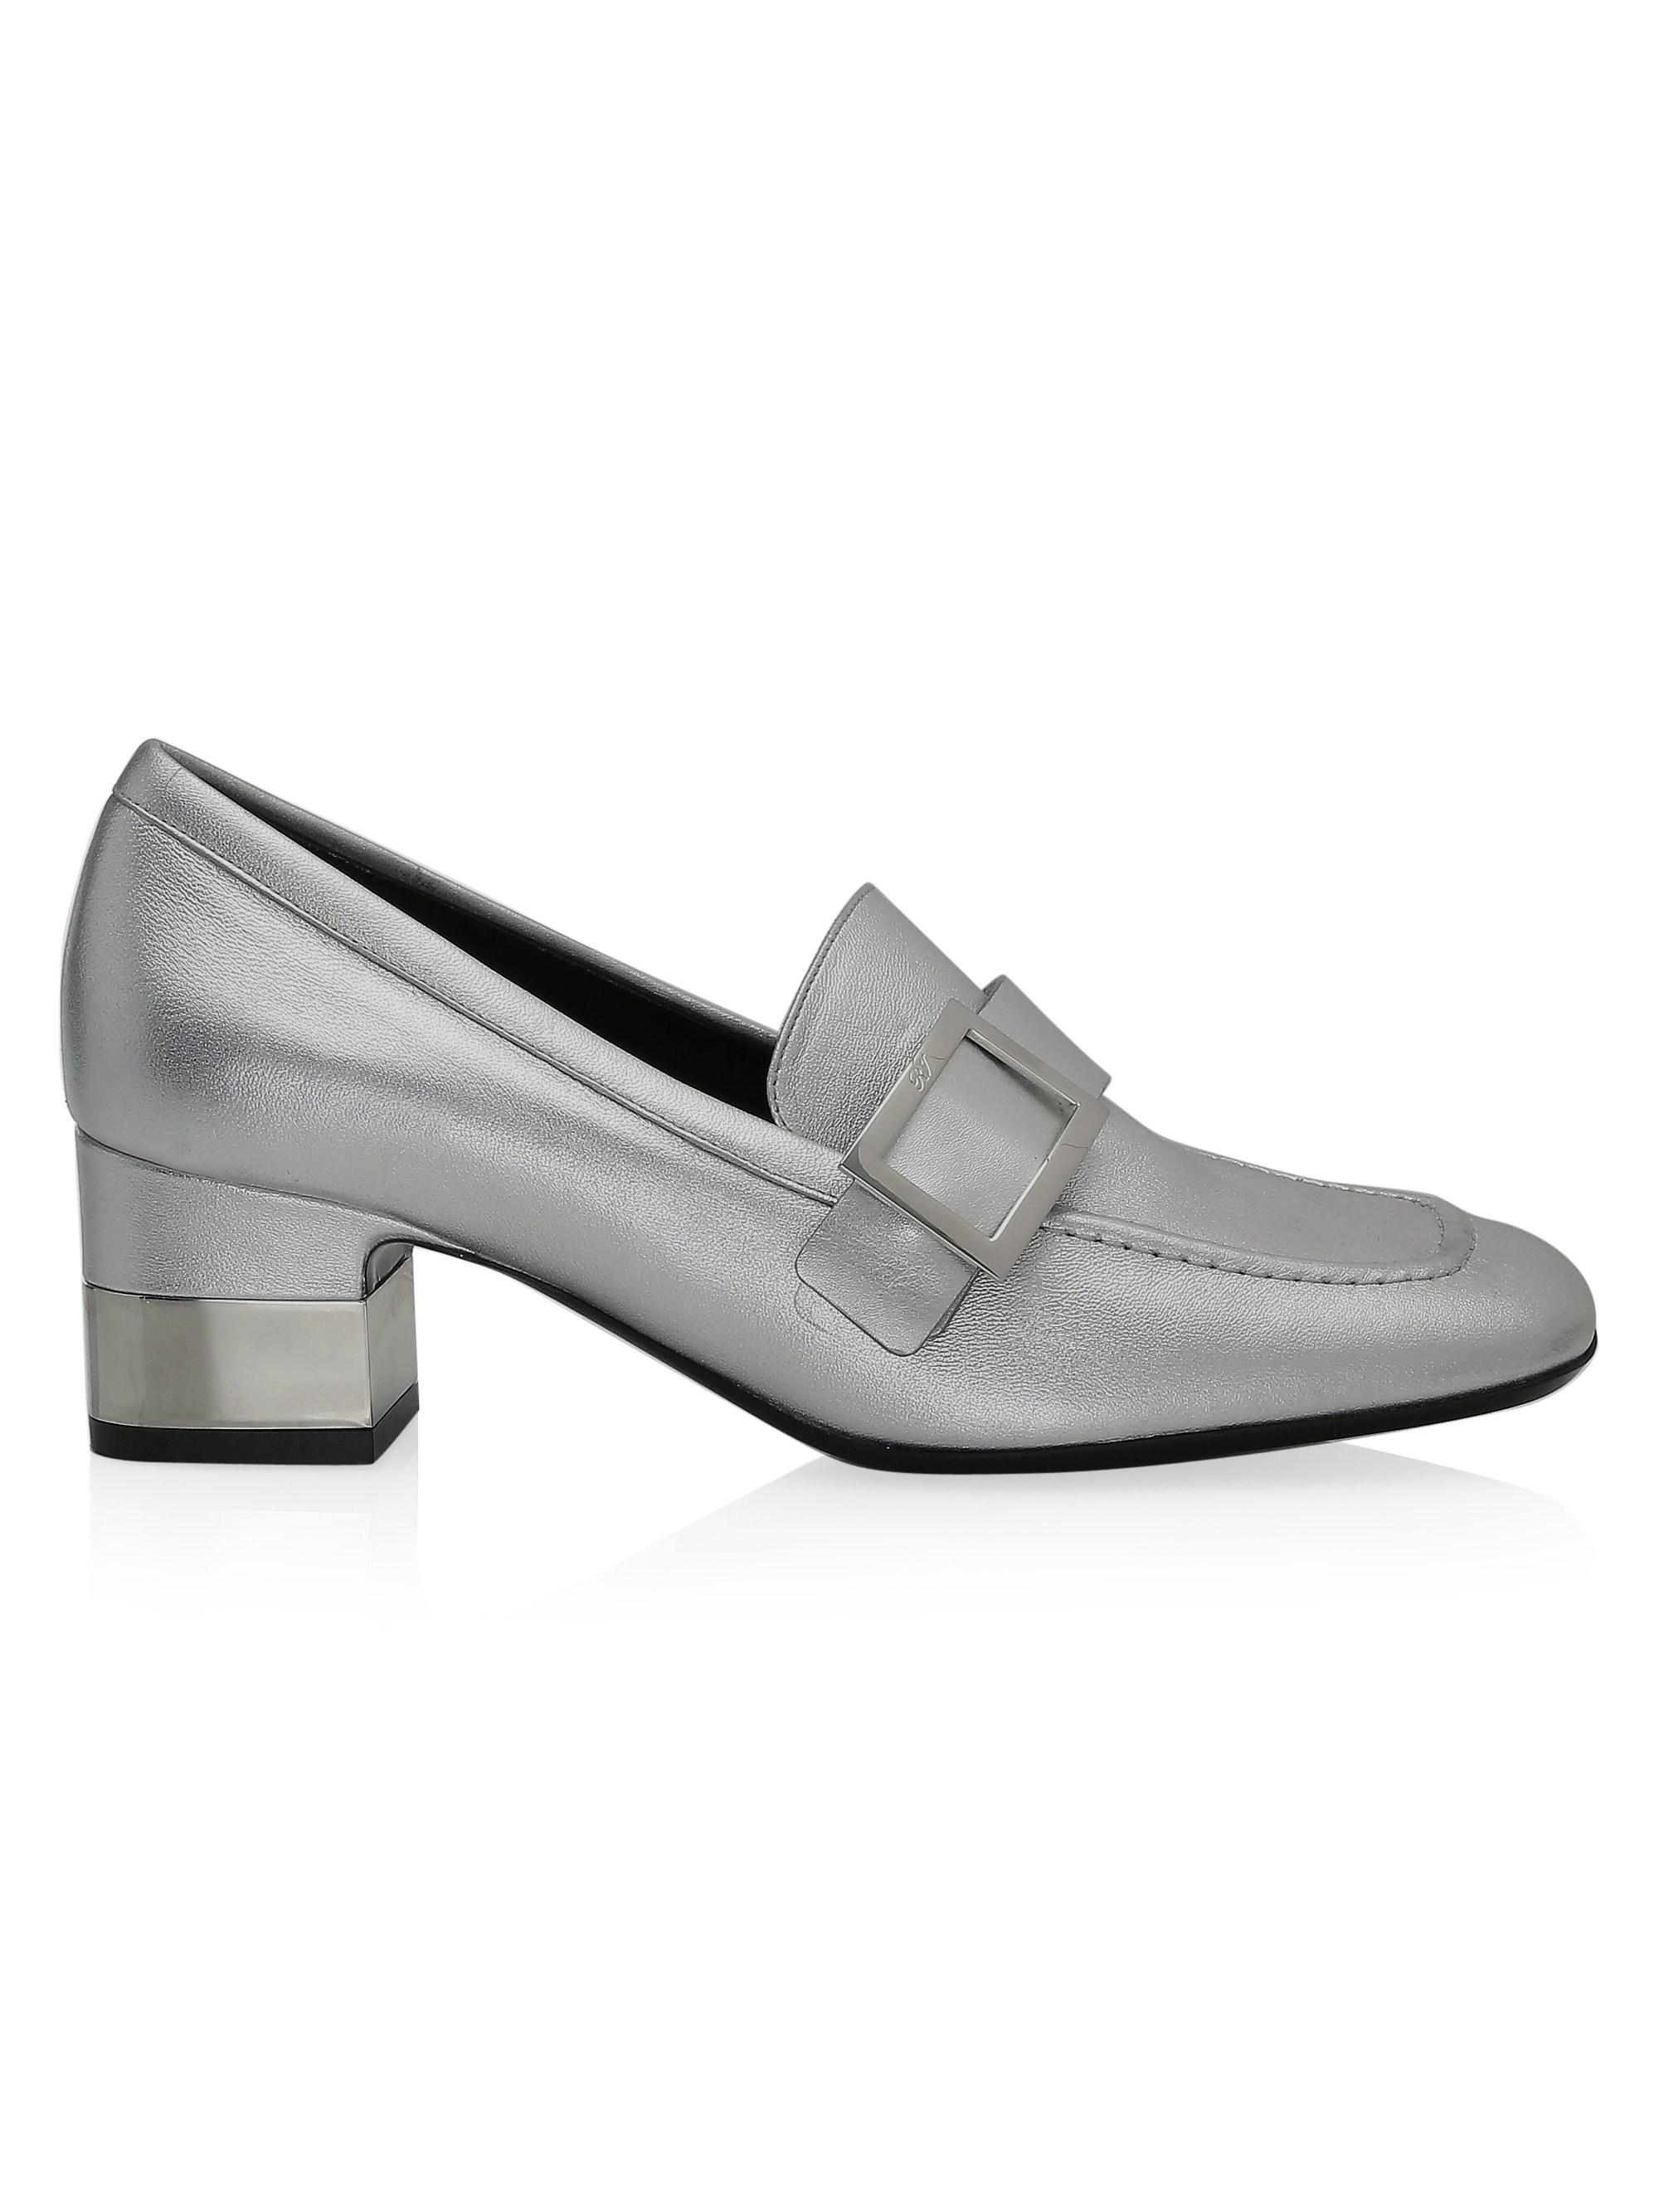 c043ed48798 Lyst - Roger Vivier Metallic Leather Heeled Buckle Loafers in Metallic